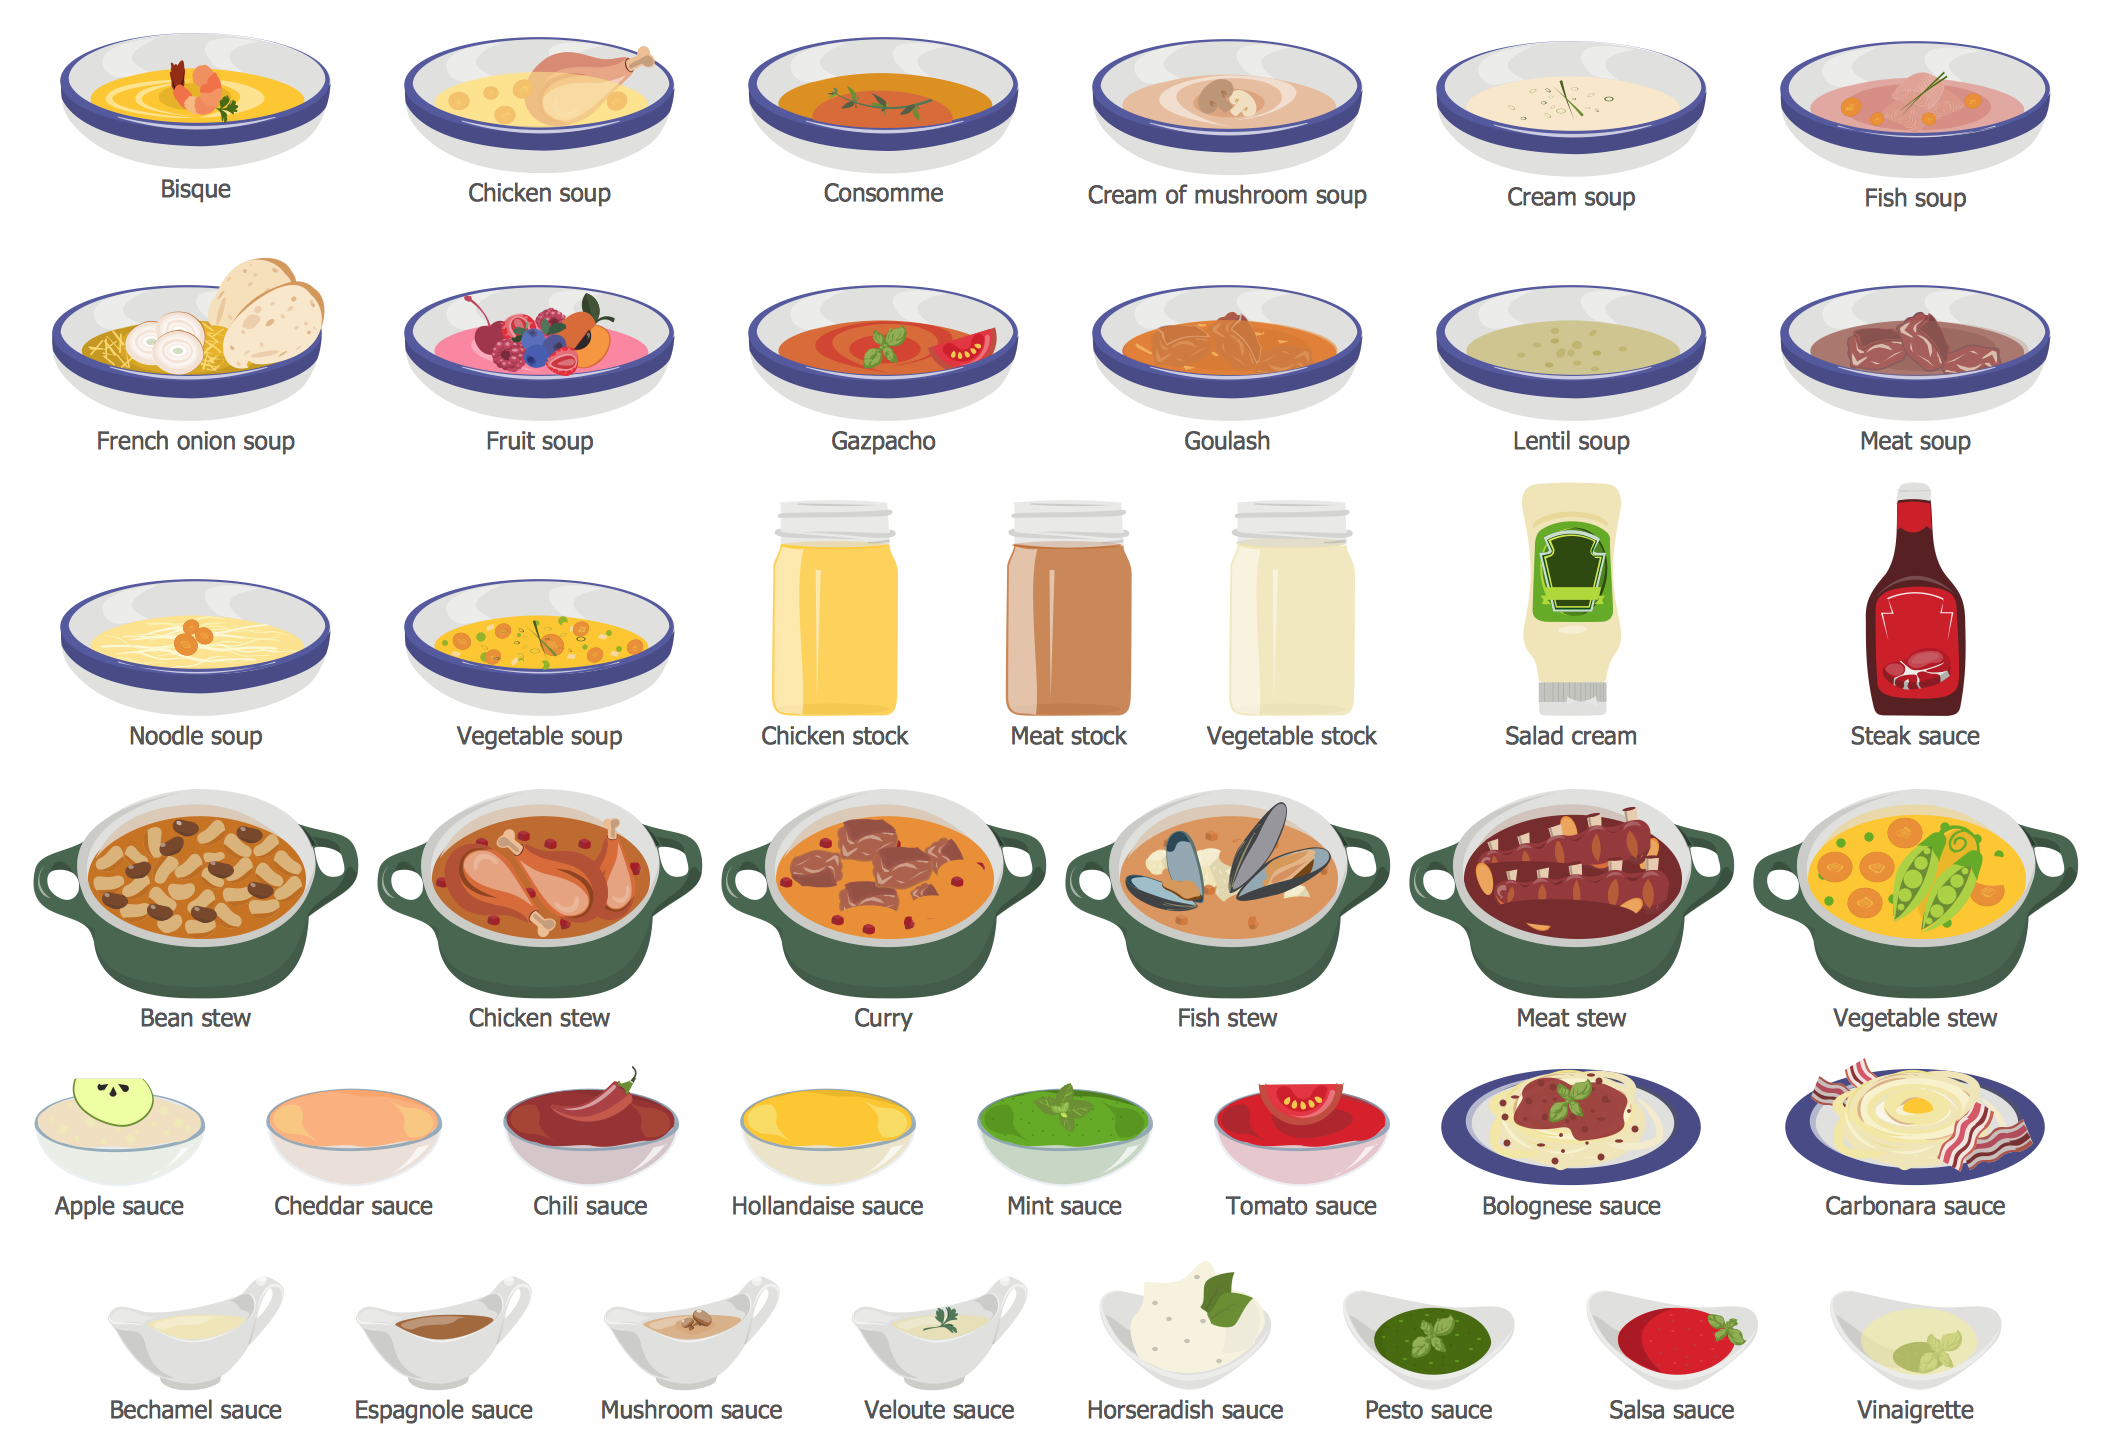 Soups, Stocks, Stews, and Sauces Library